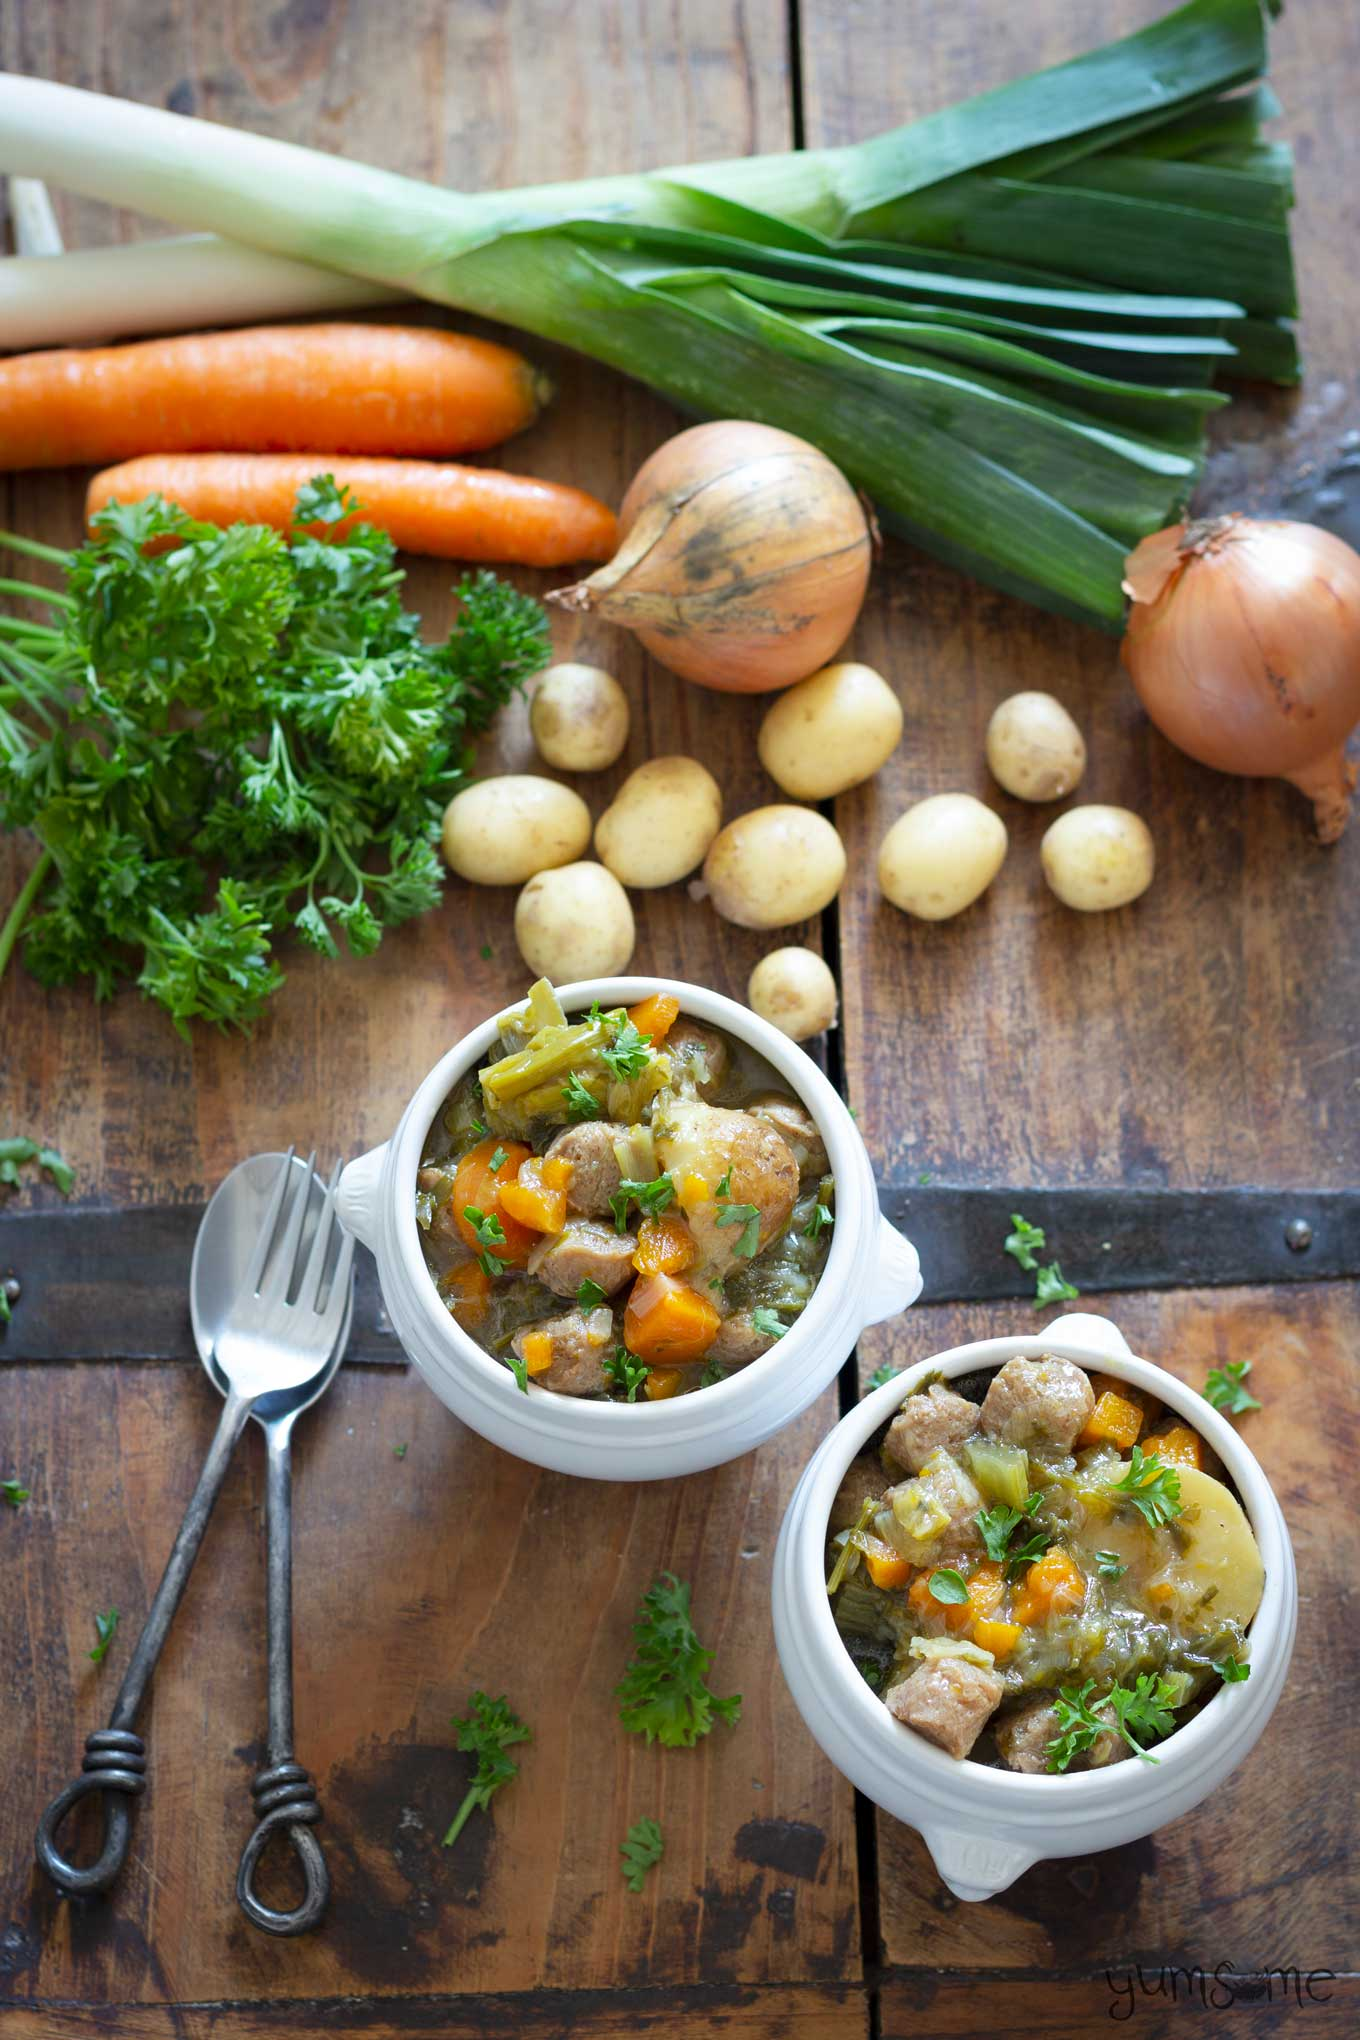 Overhead photo of two bowls of simple vegan Irish stew and some vegetables.